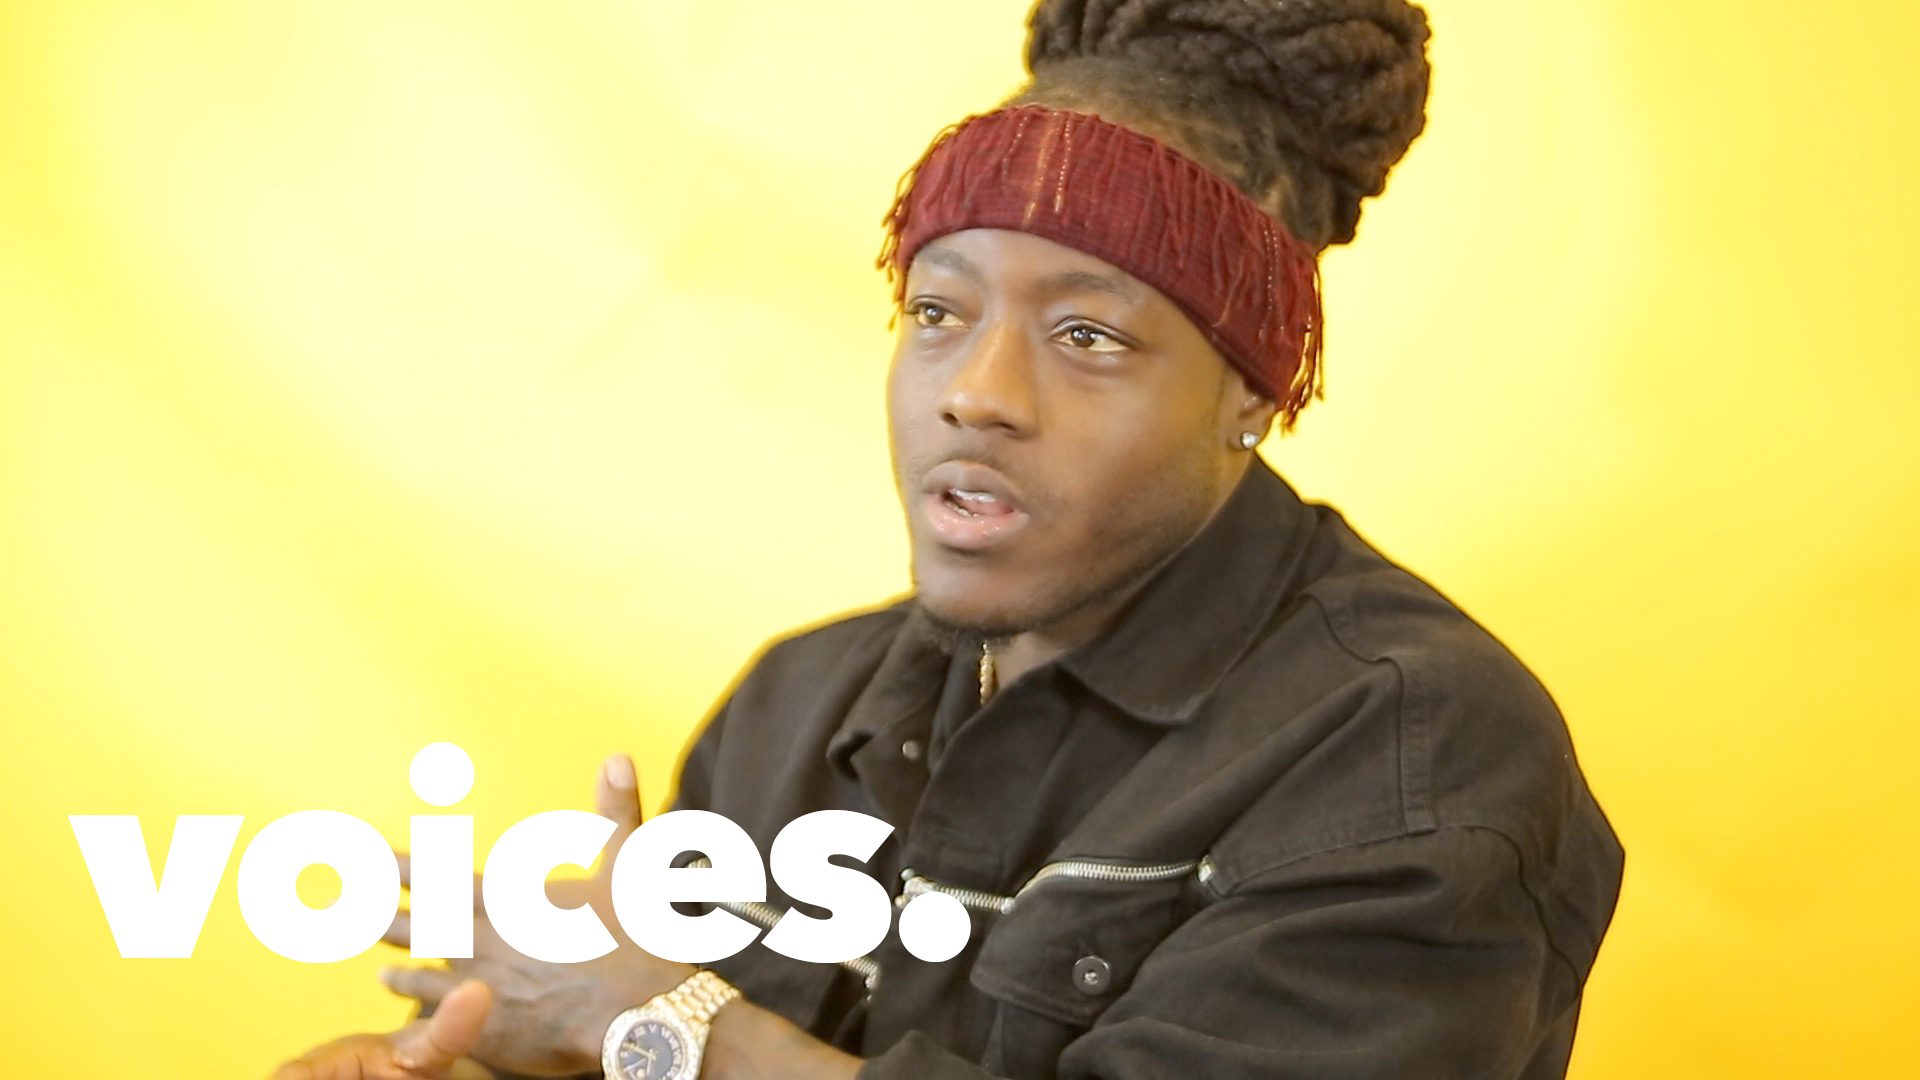 Voices: Ace Hood